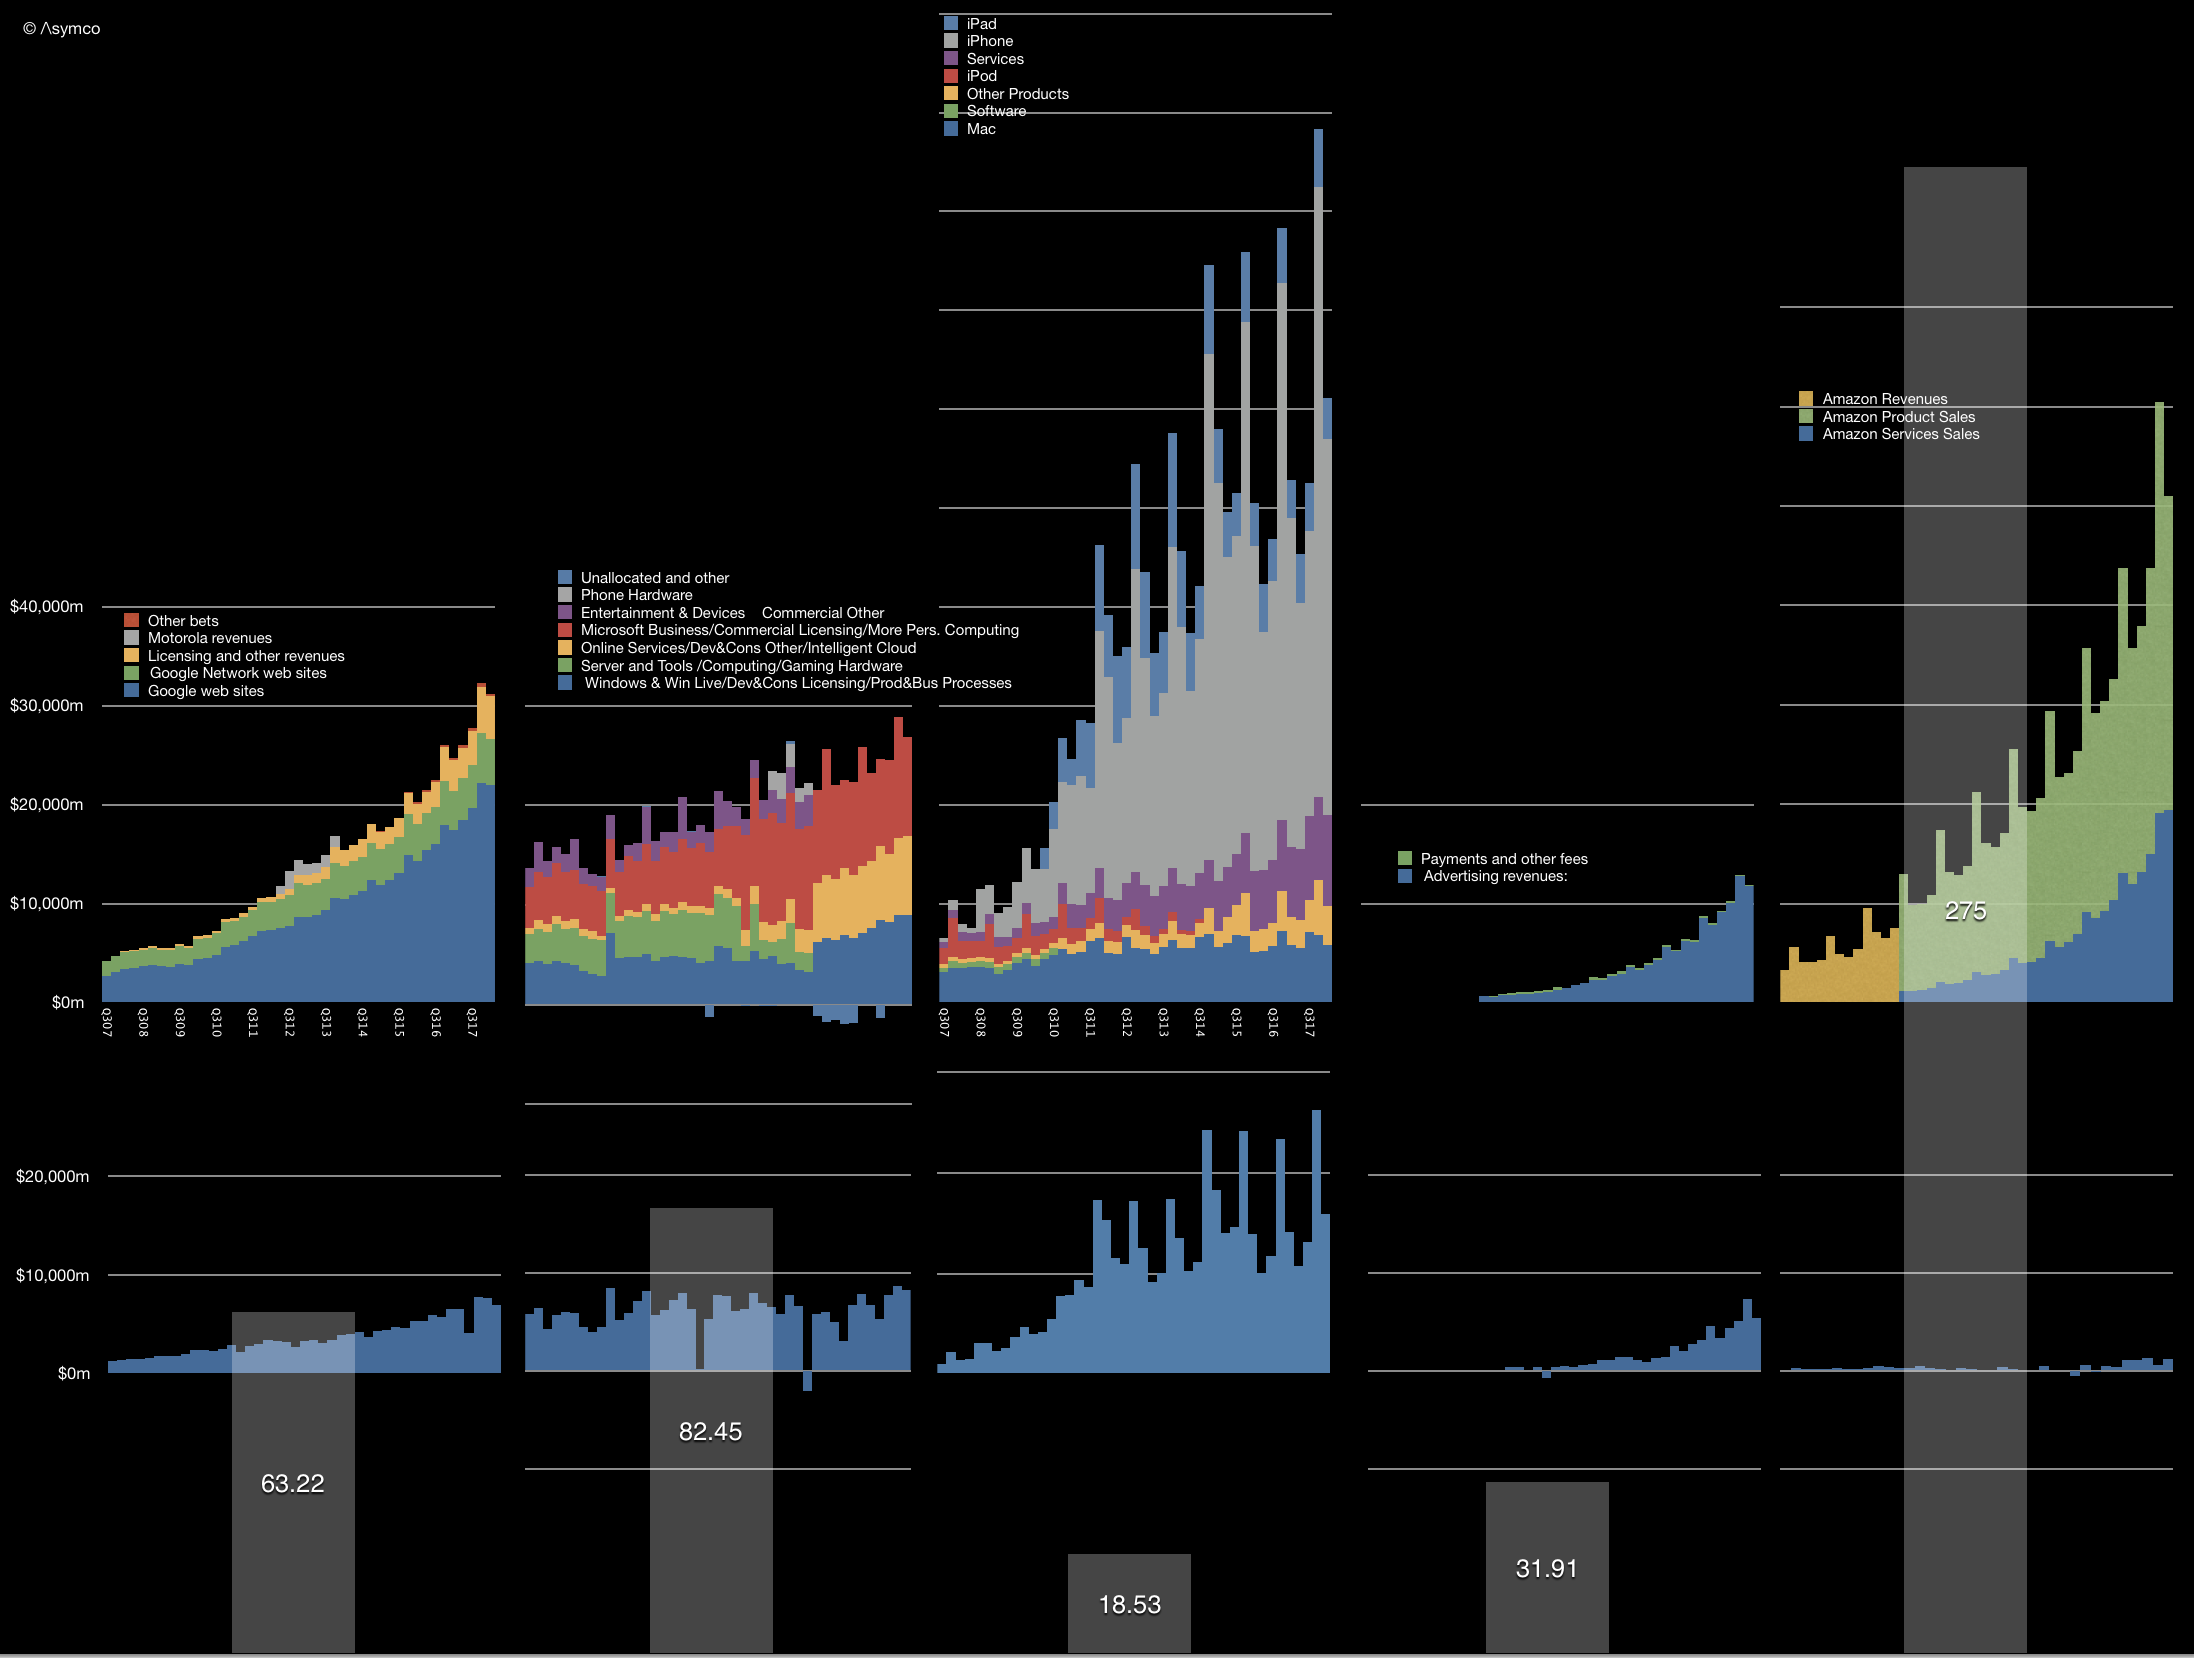 Industry | Asymco